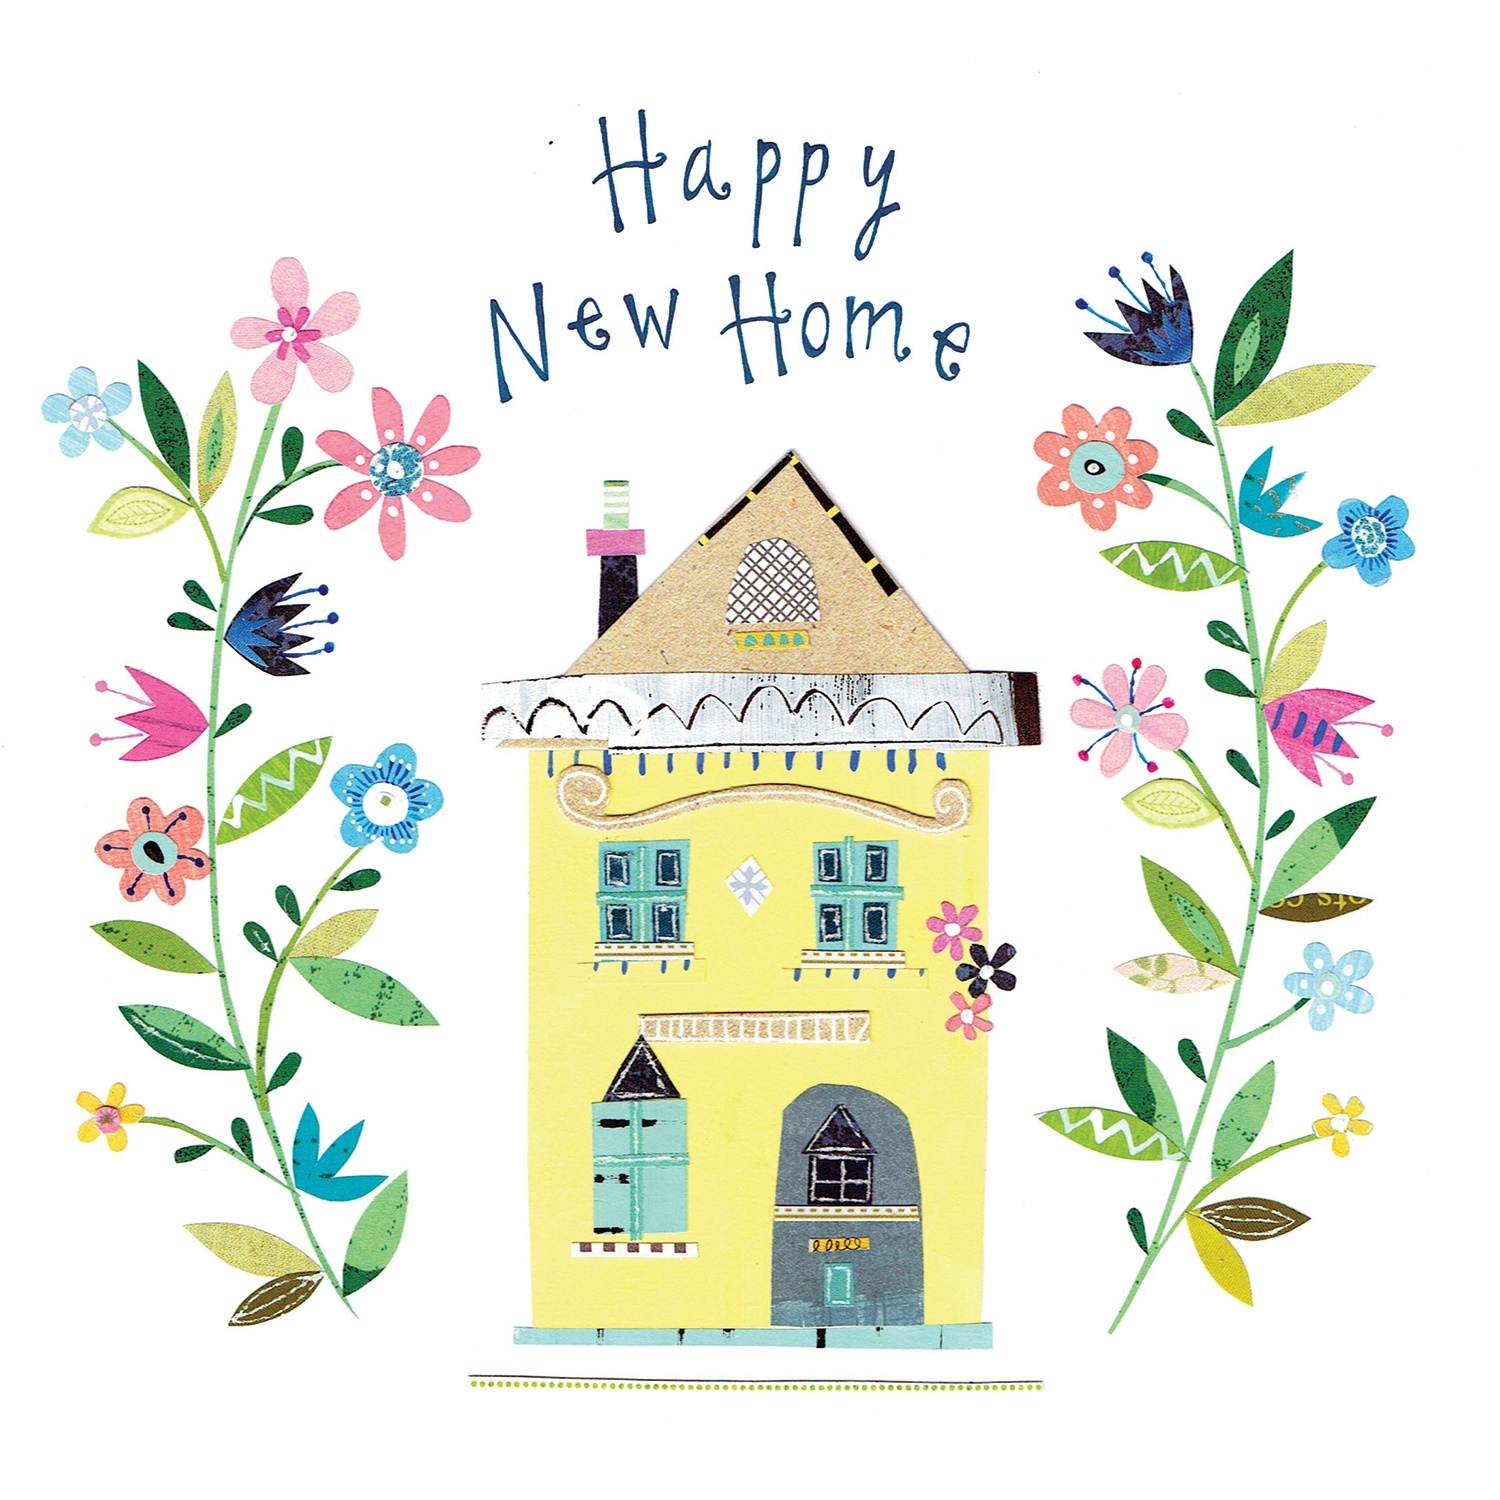 Happy New Home - Congratulations Card (Free) | Greetings Island - Welcome Home Cards Free Printable